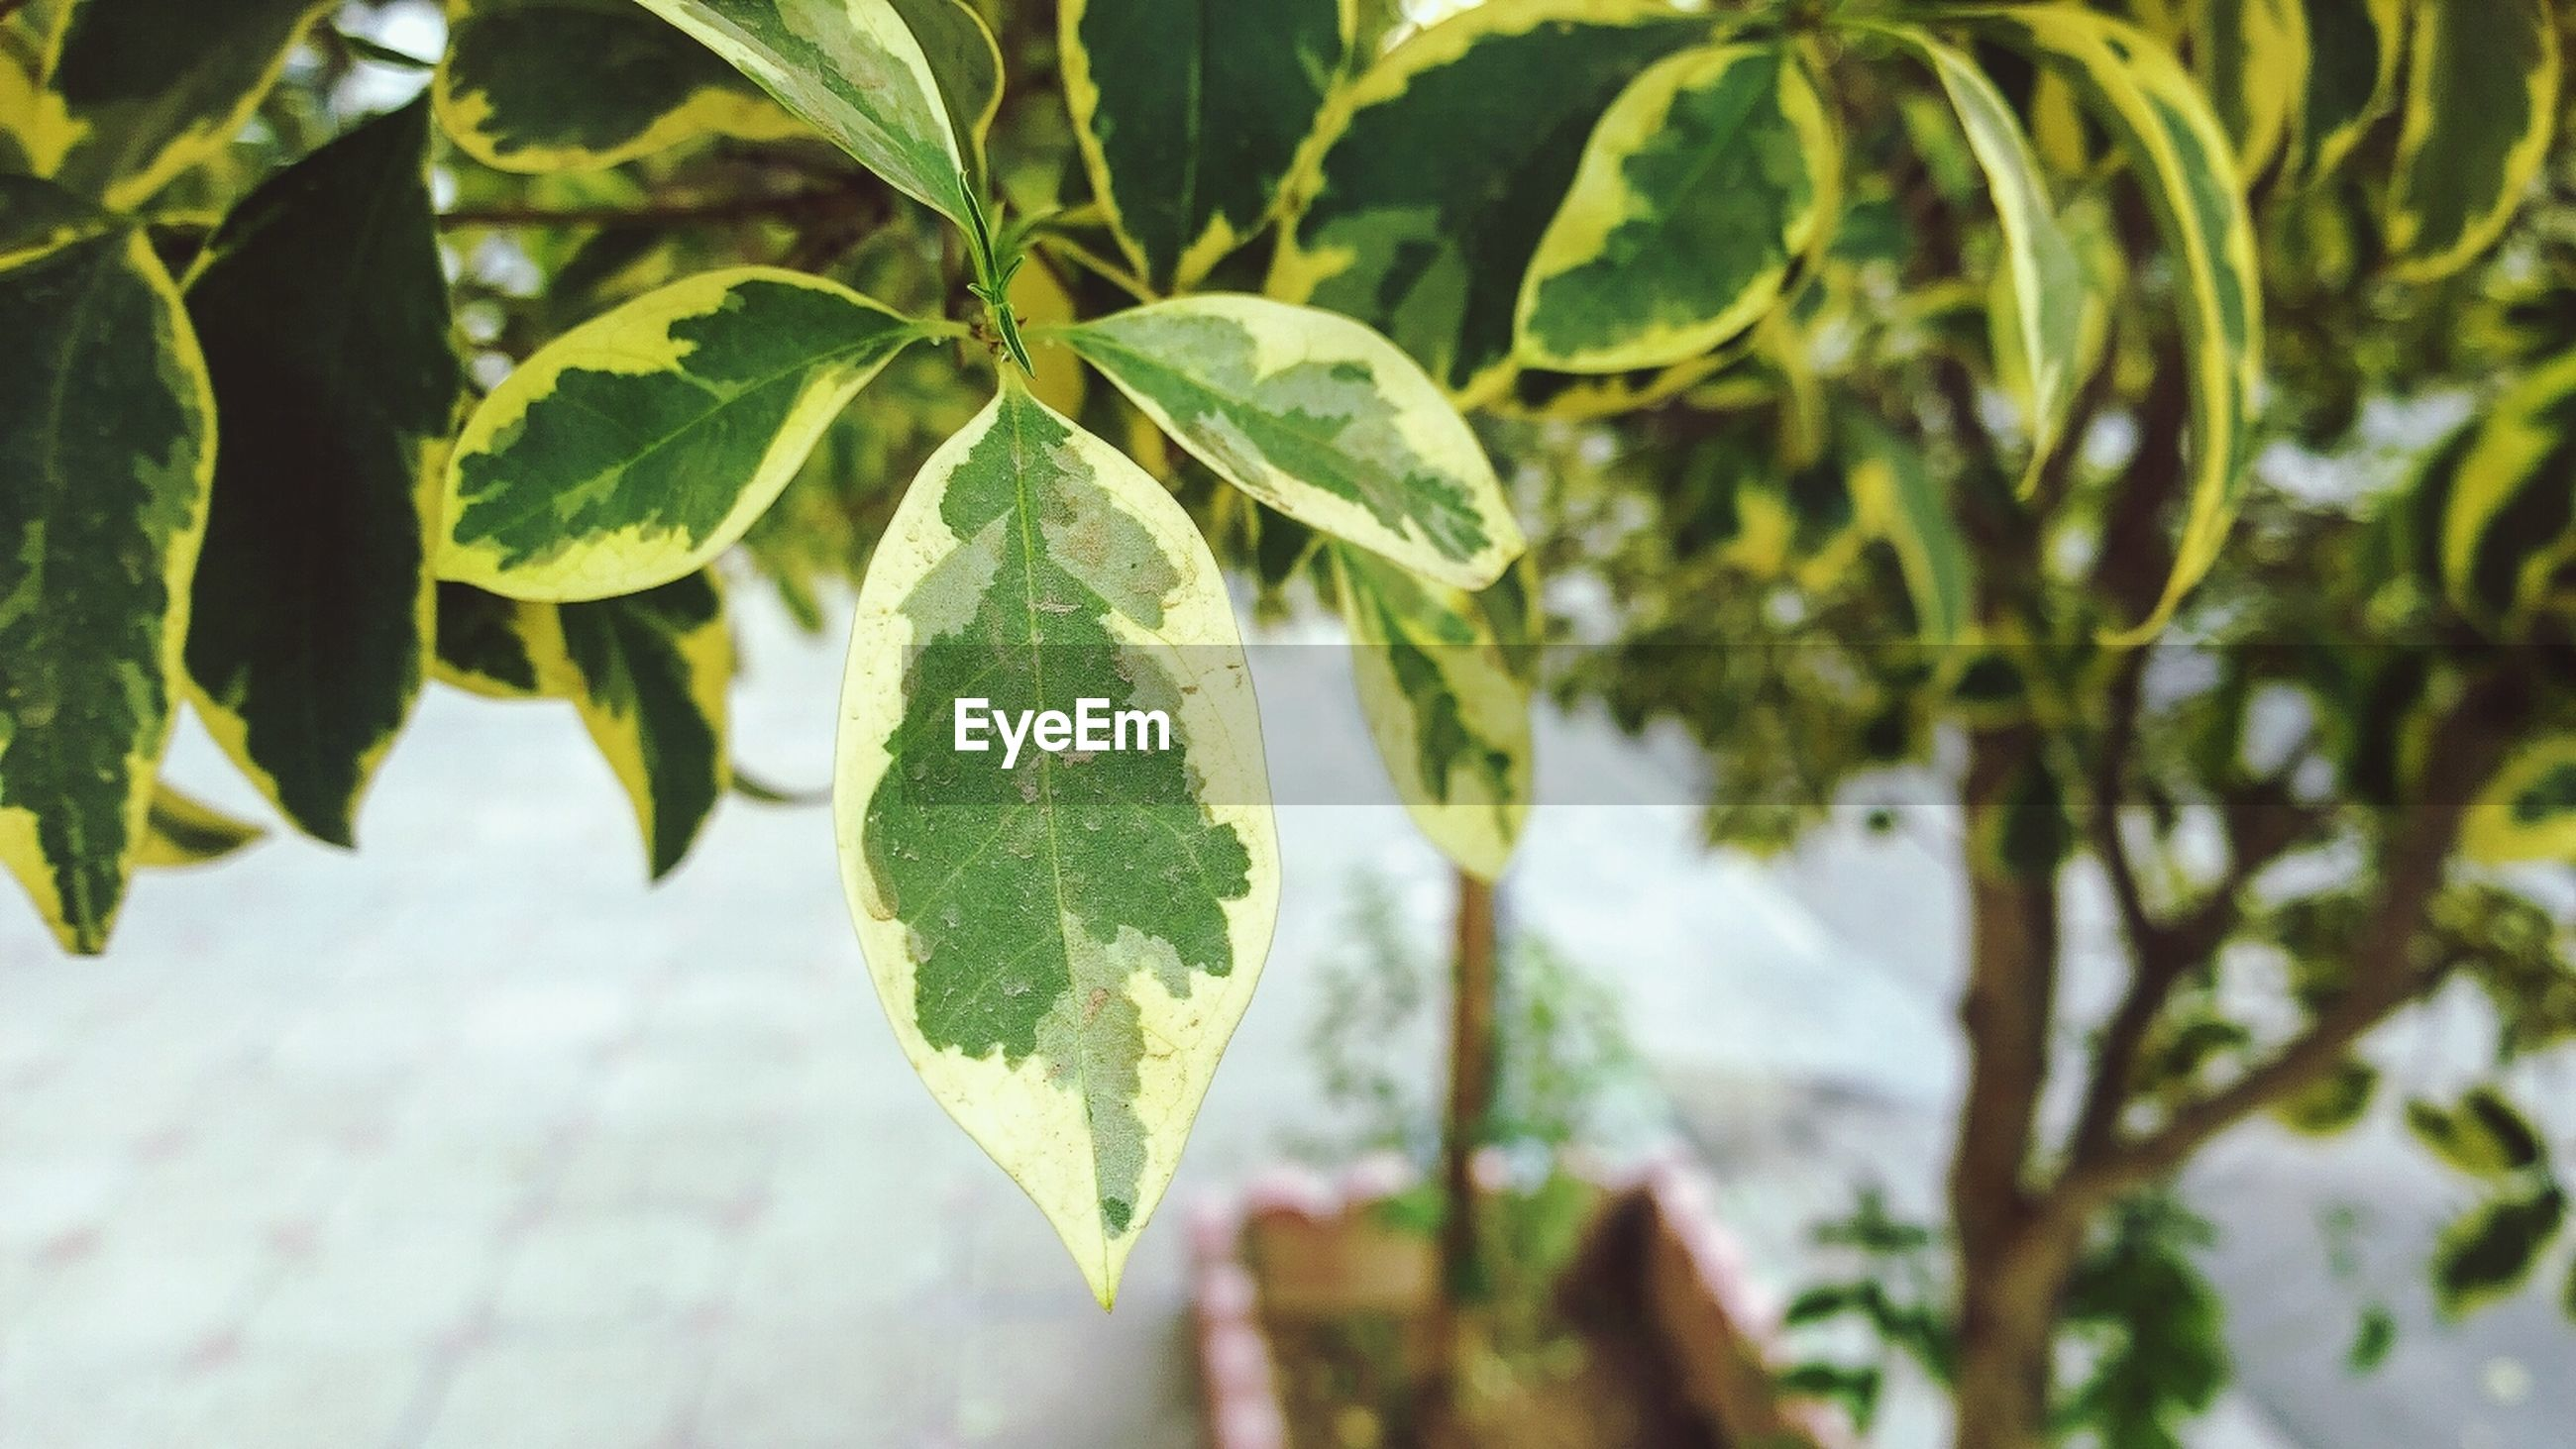 leaf, growth, green color, leaves, close-up, plant, leaf vein, nature, focus on foreground, branch, tree, tranquility, day, beauty in nature, sunlight, outdoors, no people, selective focus, season, growing